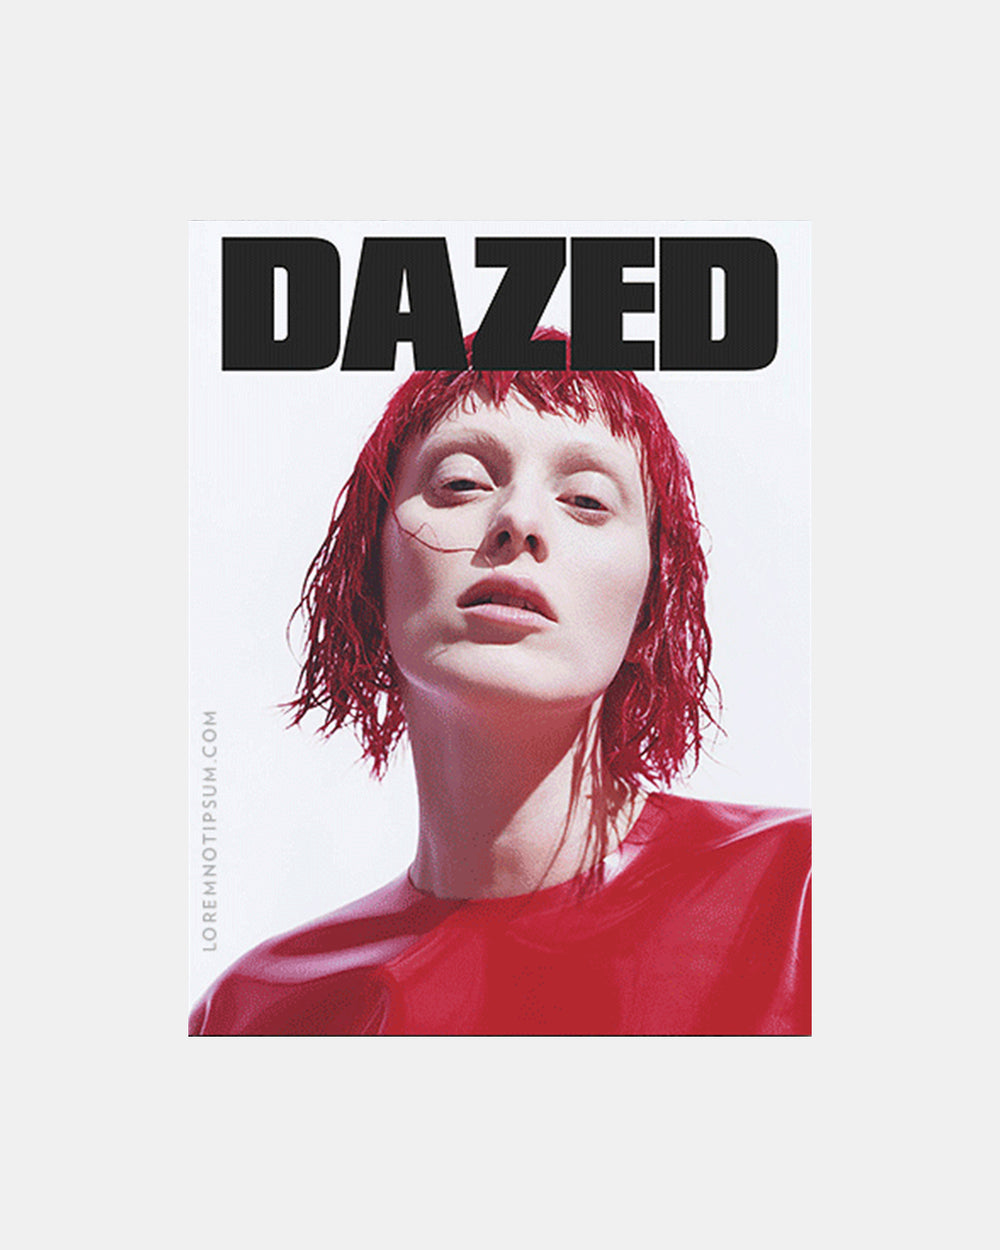 Dazed - Summer 19 Issue (Karen Elson)